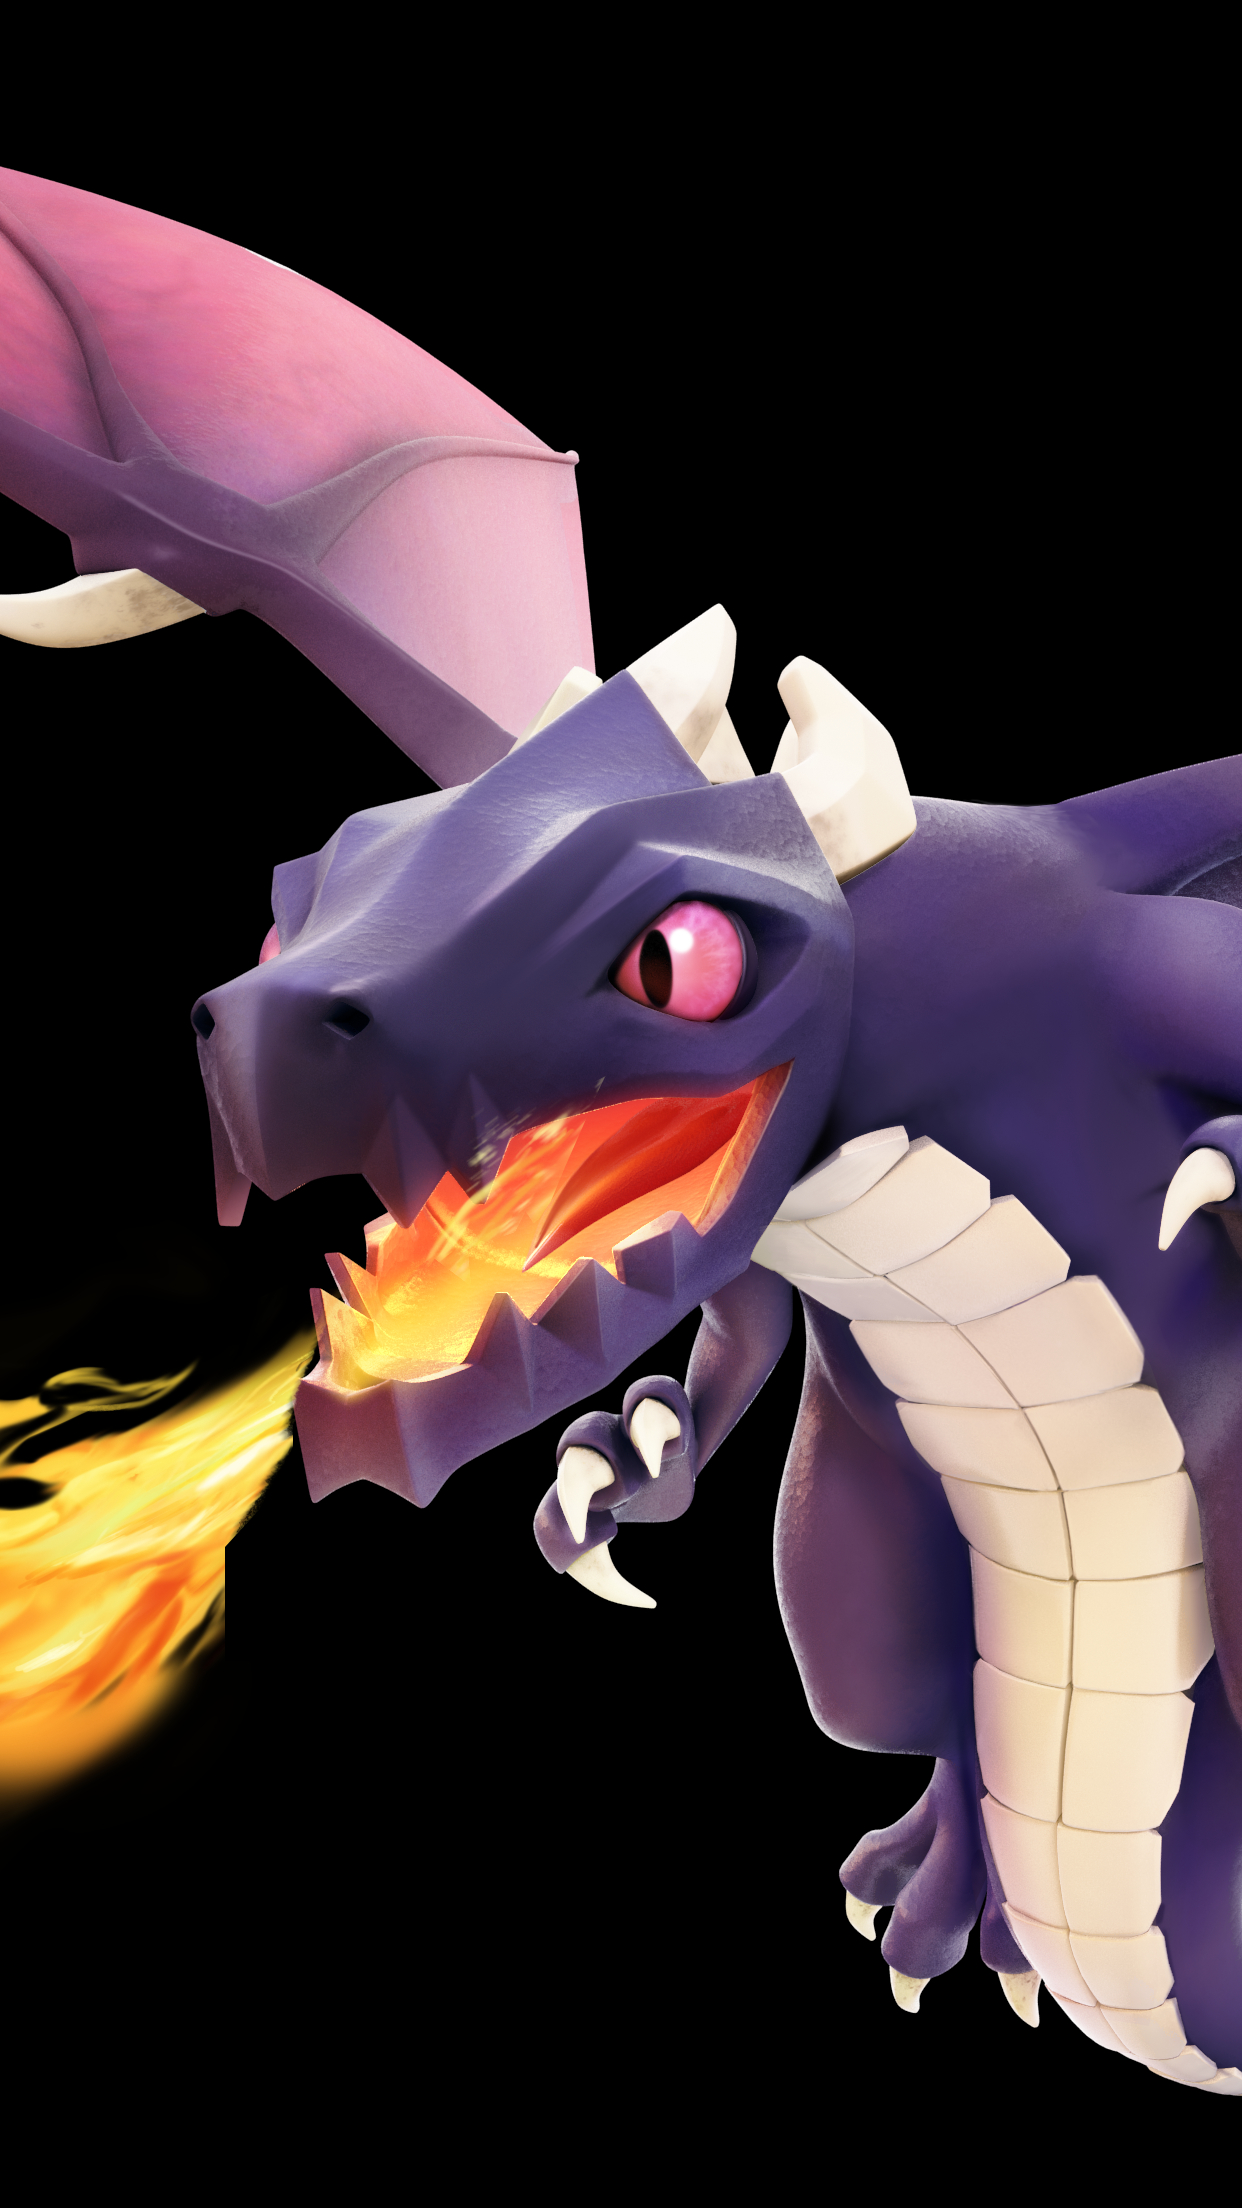 Graffiti Wallpaper For Iphone 5 Clash Of Clans Dragon Wallpaper For Iphone X 8 7 6